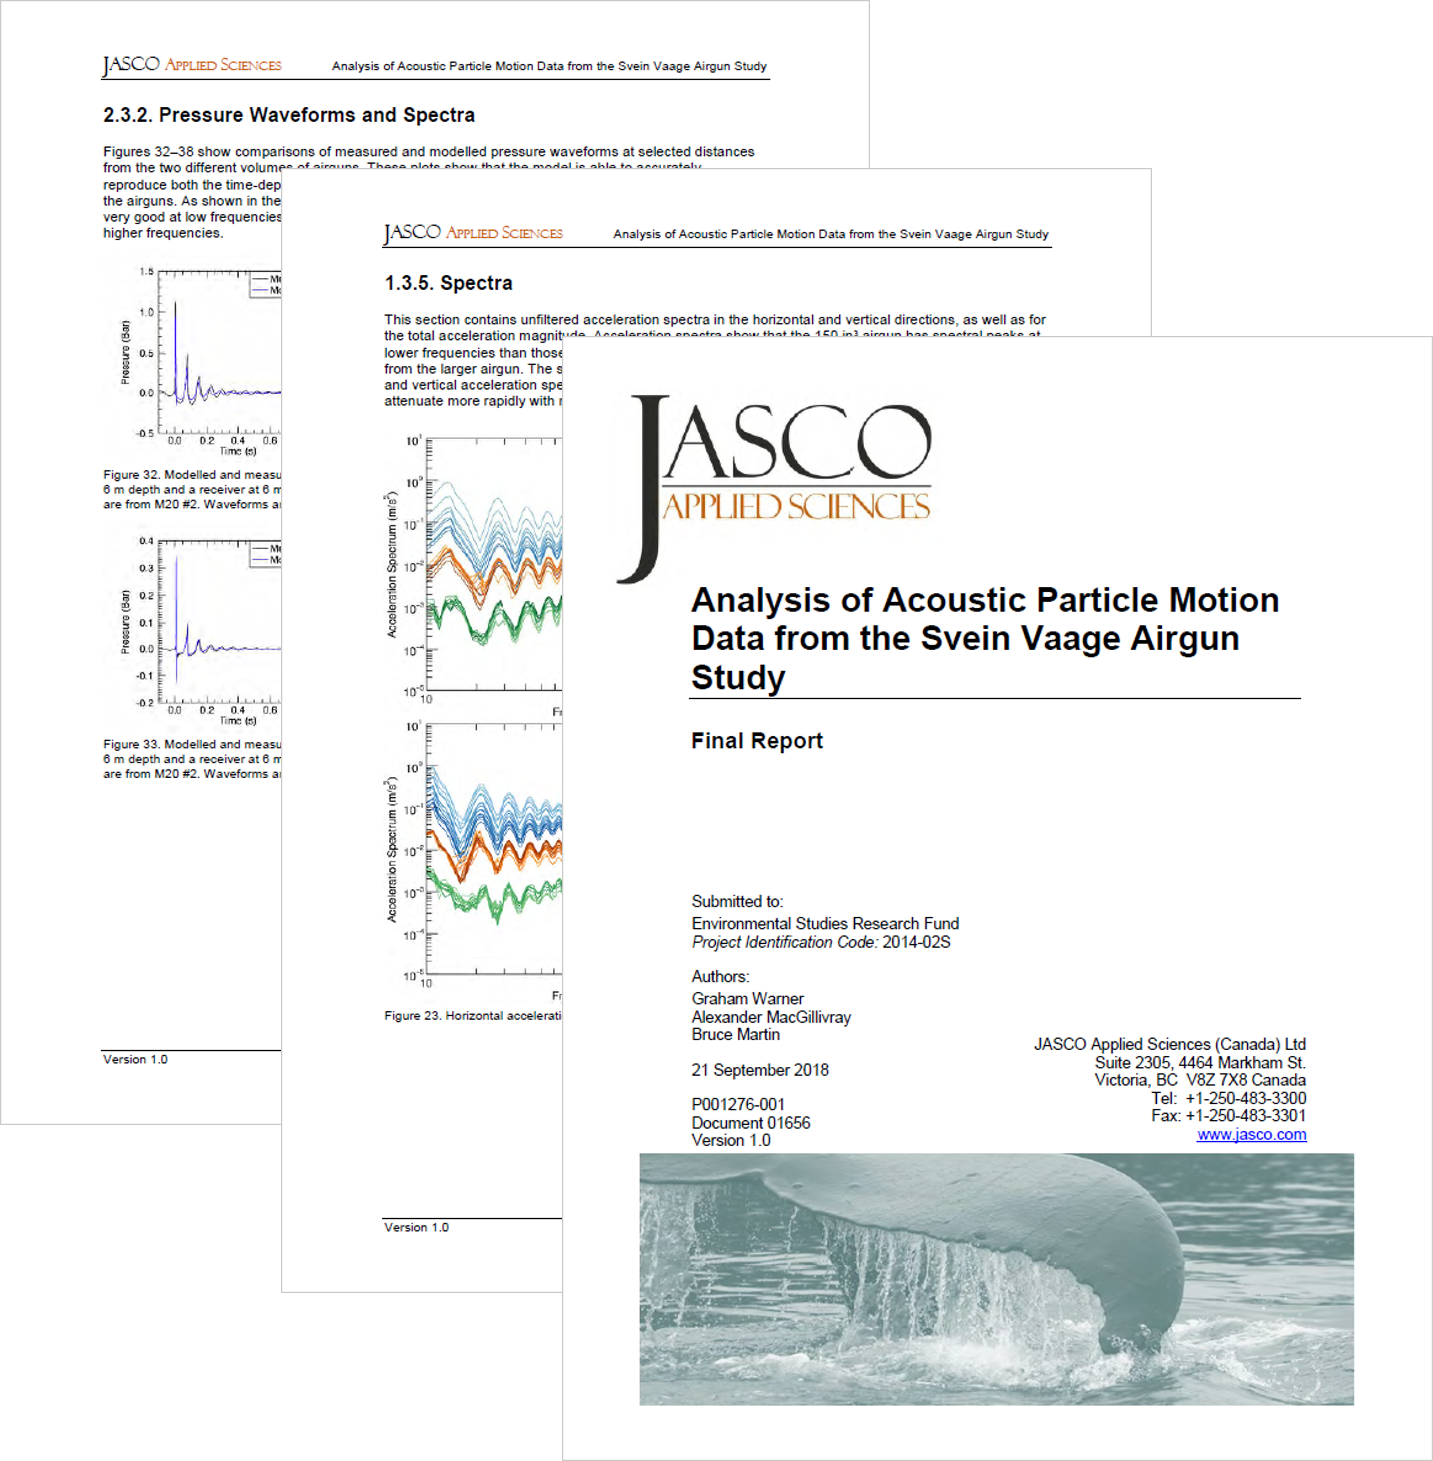 Analysis of Acoustic Particle Motion Data from the Svein Vaage Airgun StudyFinal Report (PDF, 5 MB) - Graham Warner, Alexander MacGillivray, and Bruce MartinEnvironmental Studies Research FundReport Number 216 (2018)